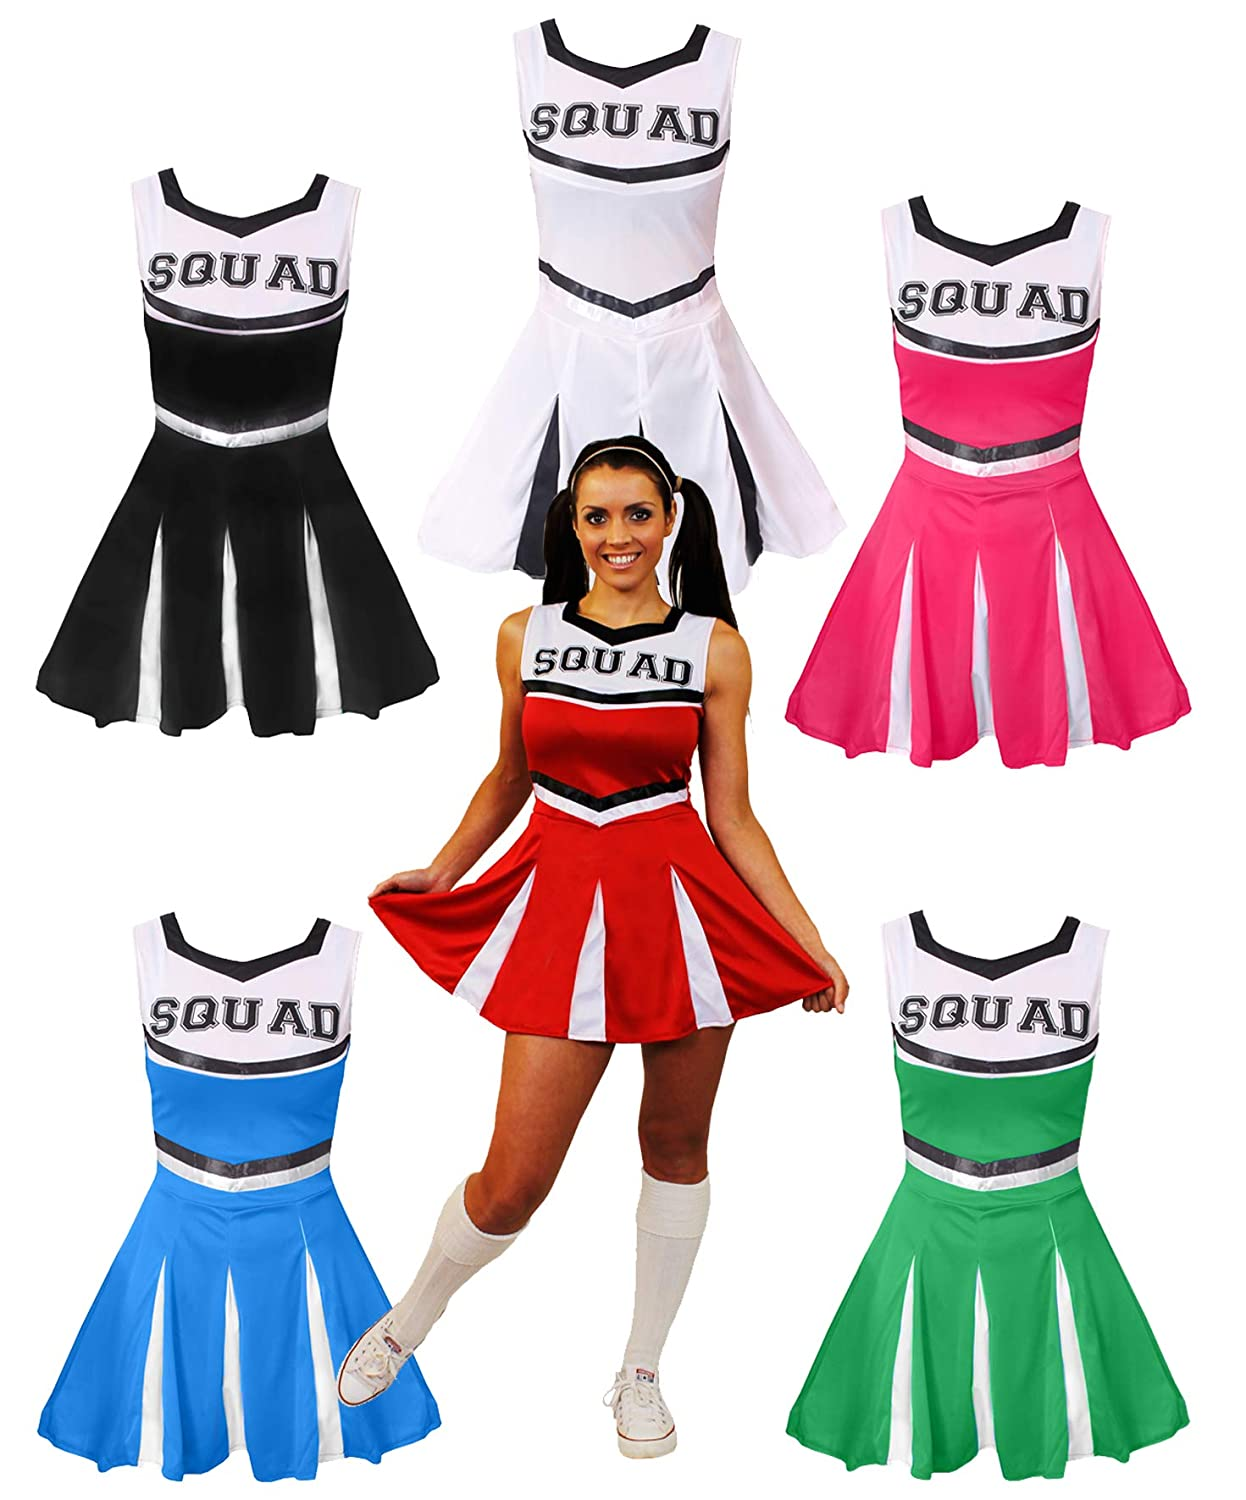 14a272b18946 Ladies Blue High School Cheerleader Fancy Dress Costume Womens Cheer  Captain American Cheer Leader Uniform Blue Xsmall Uk 4-6: Amazon.co.uk:  Toys & Games